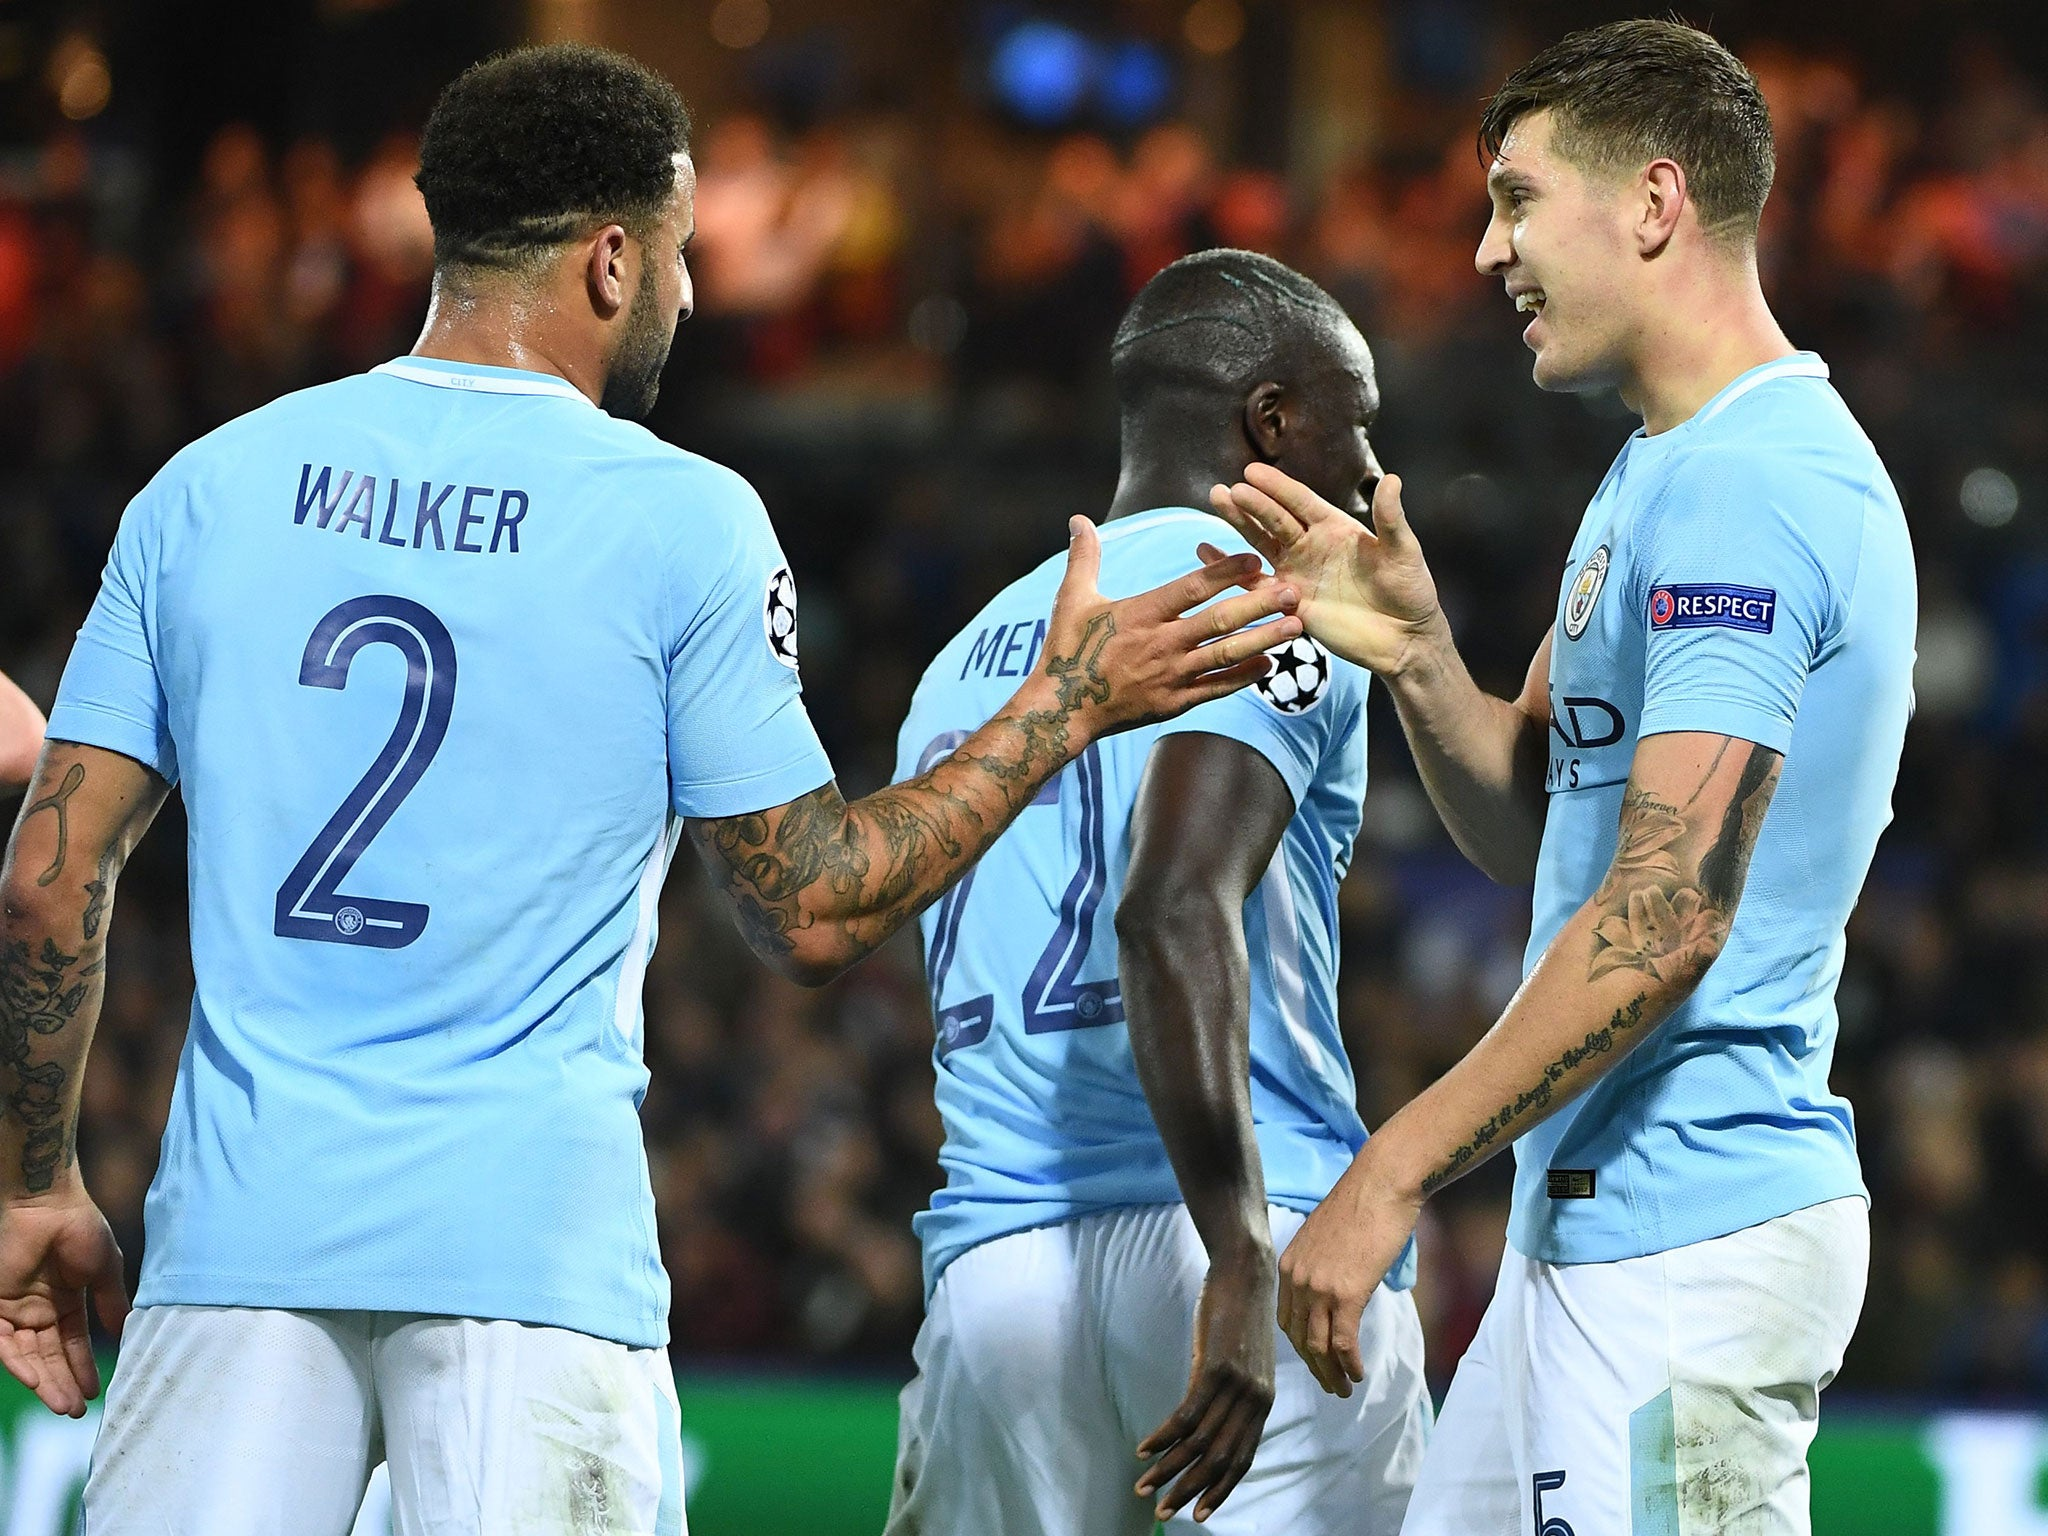 John Stones at the double as Manchester City maintain winning ways